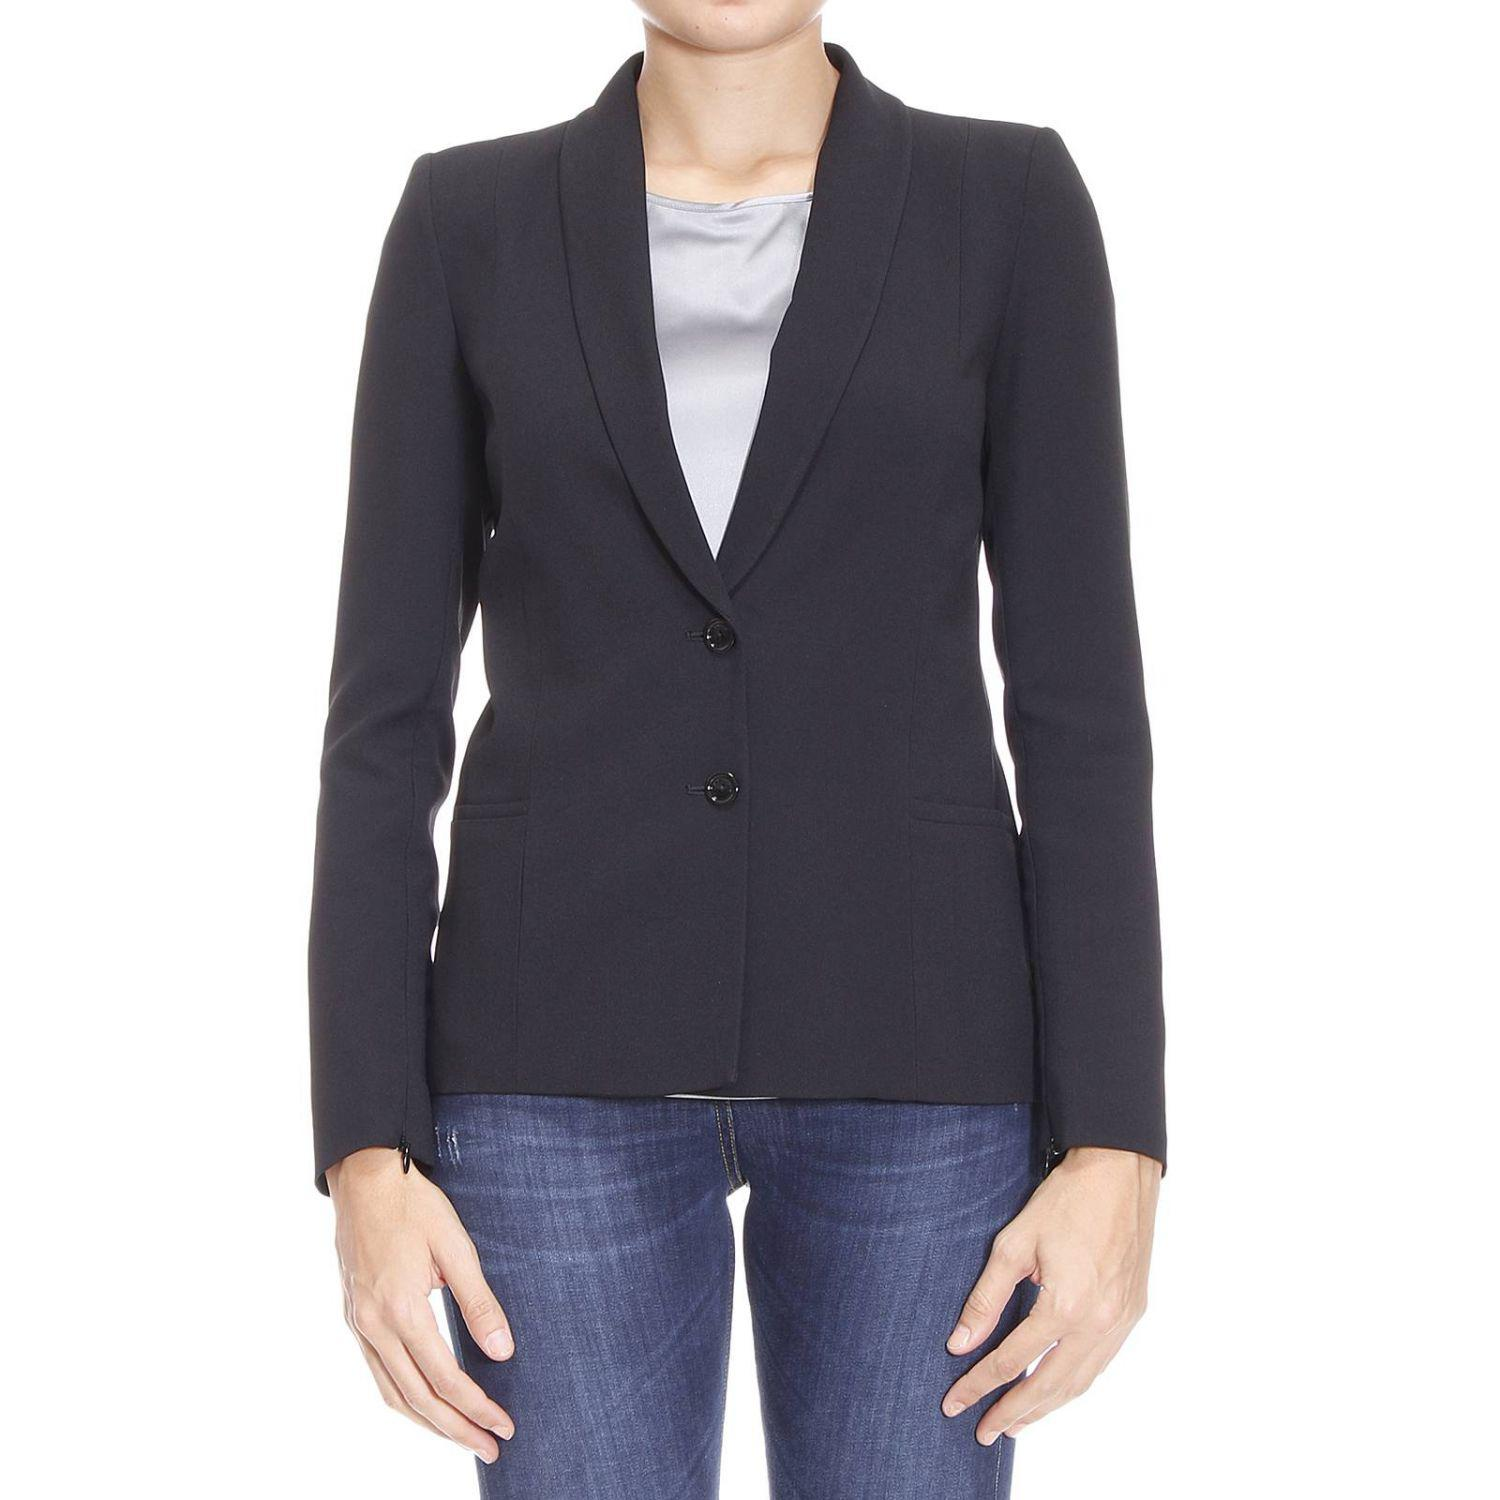 lyst patrizia pepe blazer suit jacket woman in black. Black Bedroom Furniture Sets. Home Design Ideas